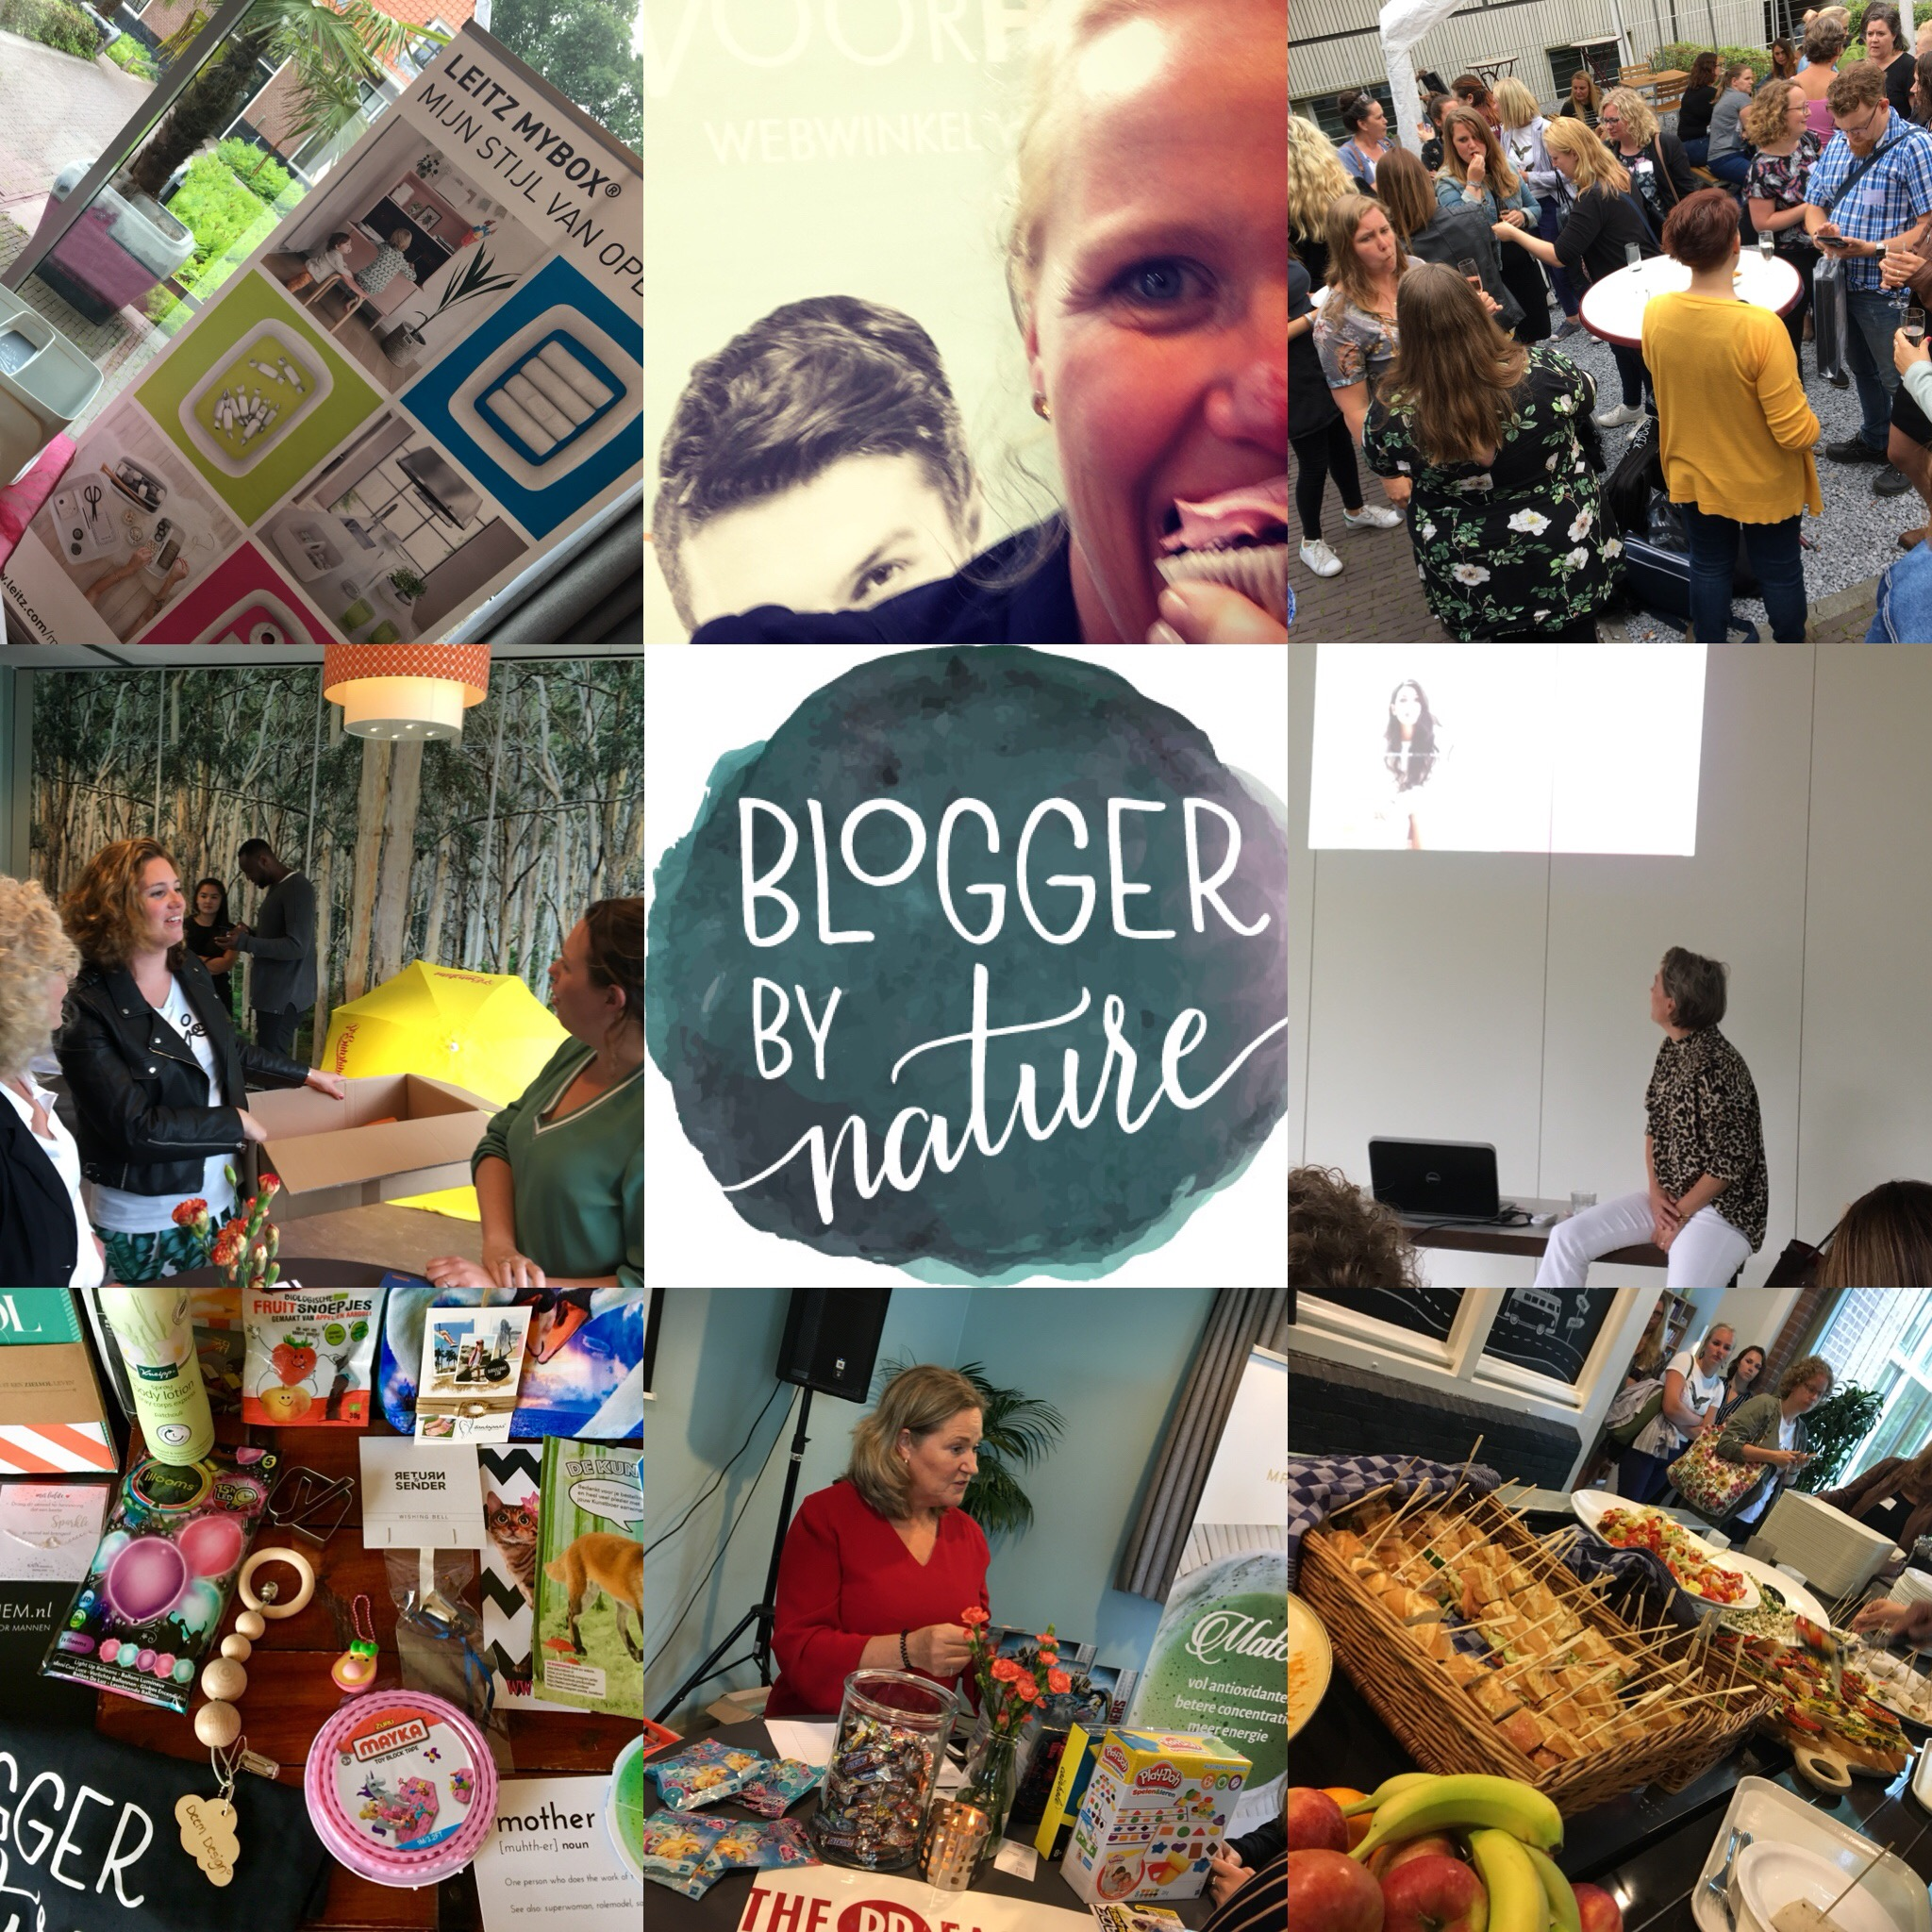 Blogger by nature BV Familie